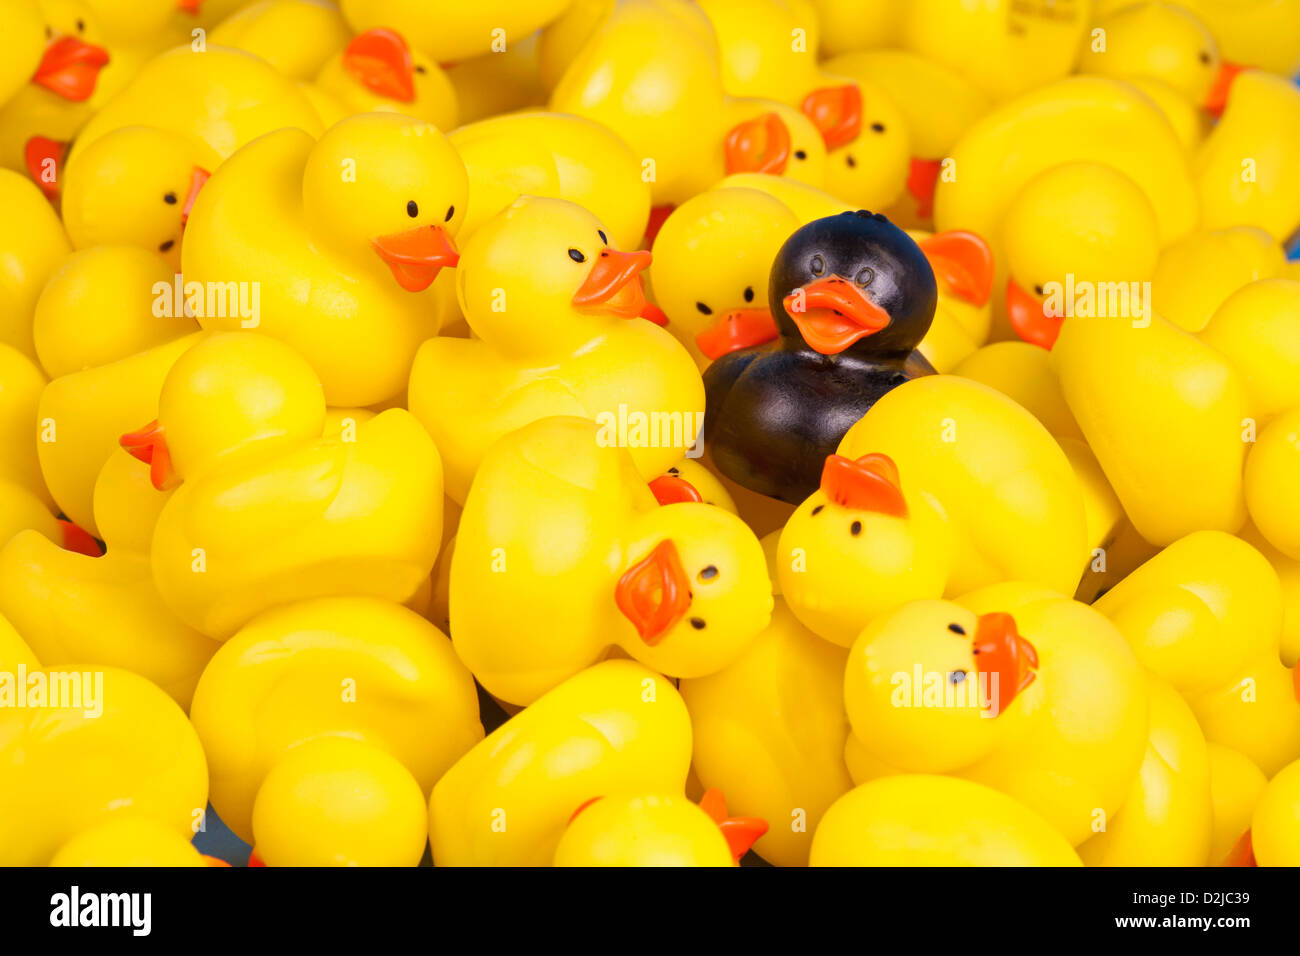 Black rubber duck in a mass of yellow rubber ducks Stock Photo ...